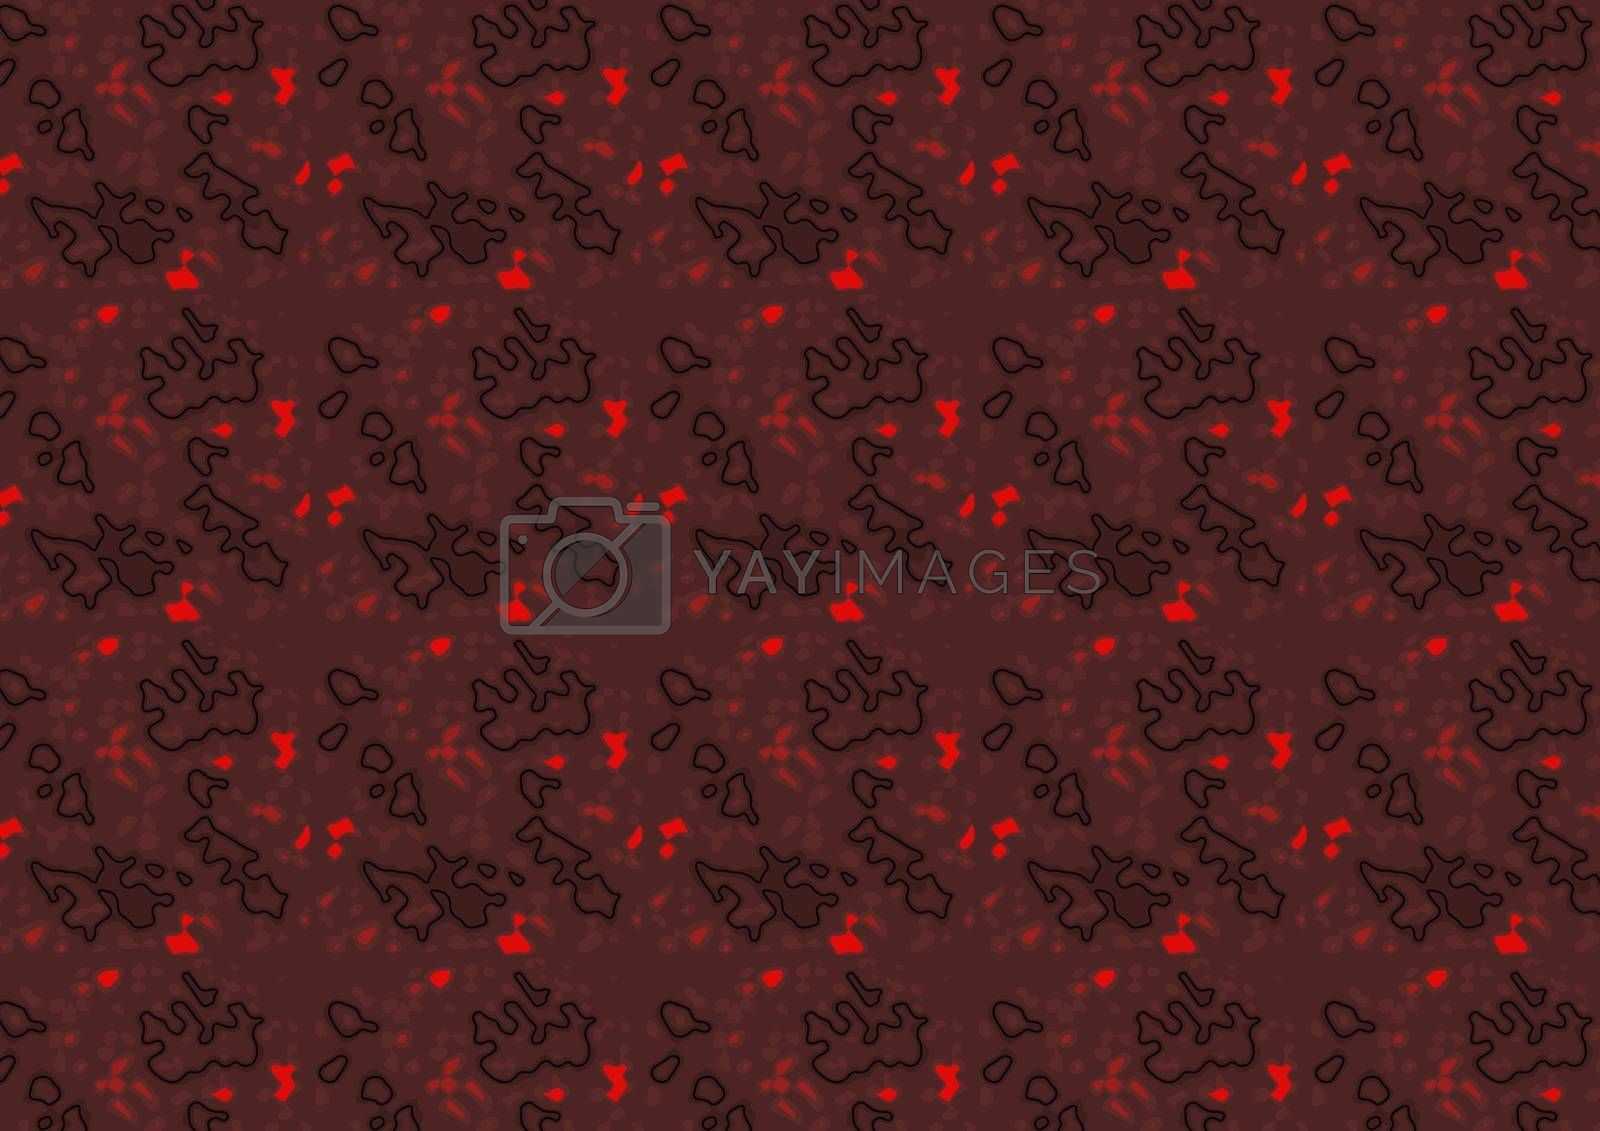 Dark Red Structured Texture with Black Line Segments and Red Glowing Grains - Abstract Background Illustration, Vector